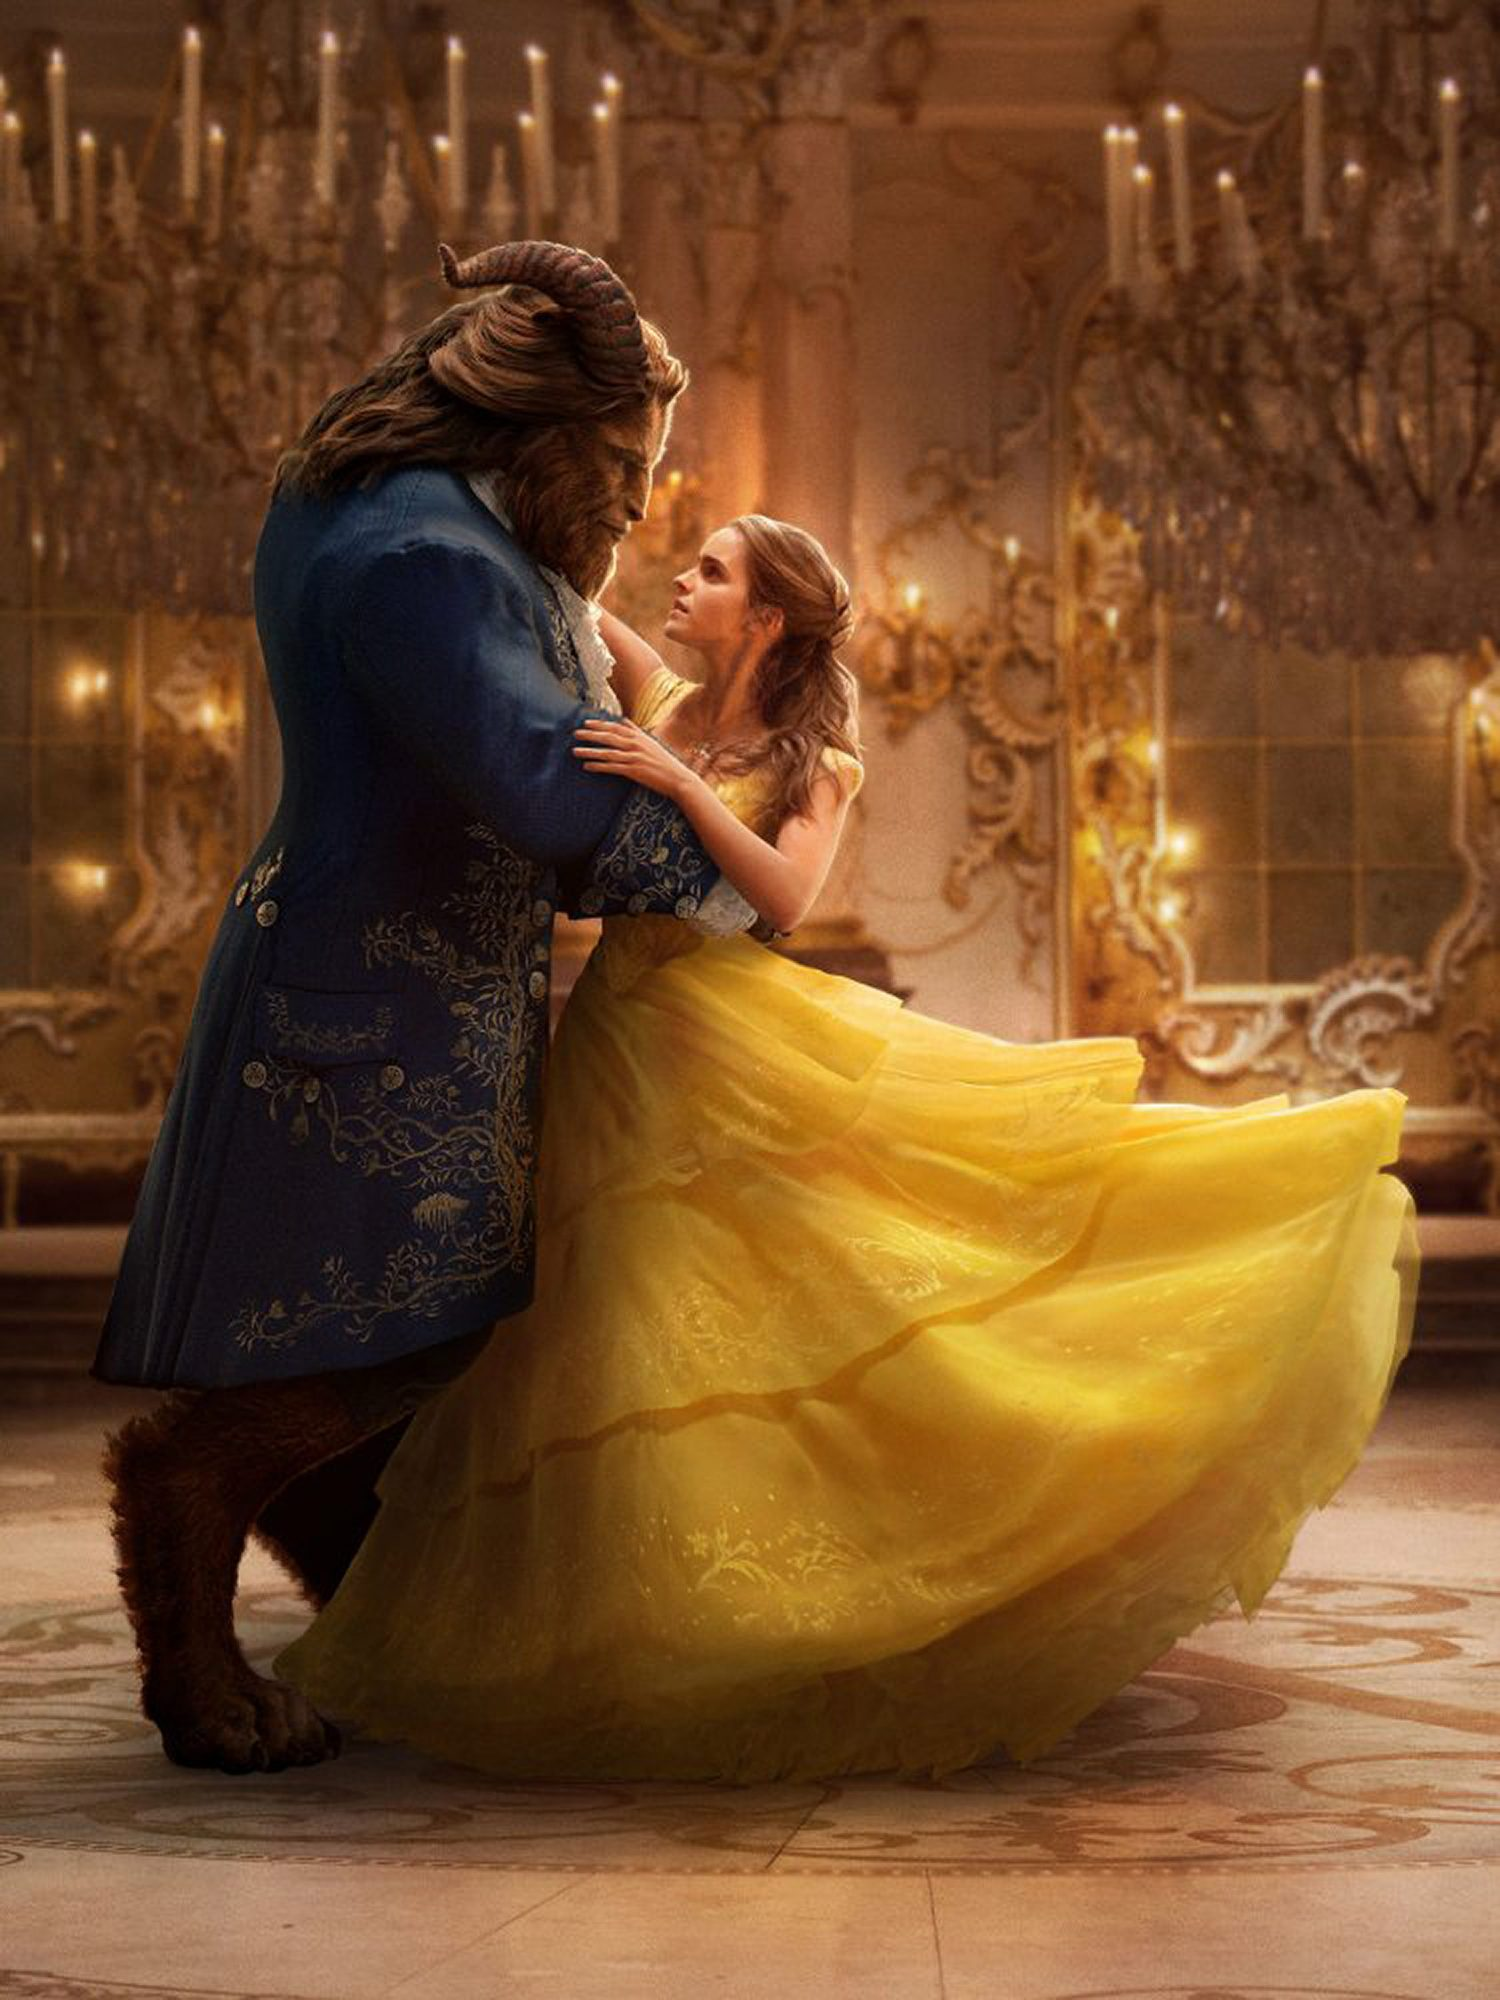 Beauty And The Beast Burning Questions Answered People Com